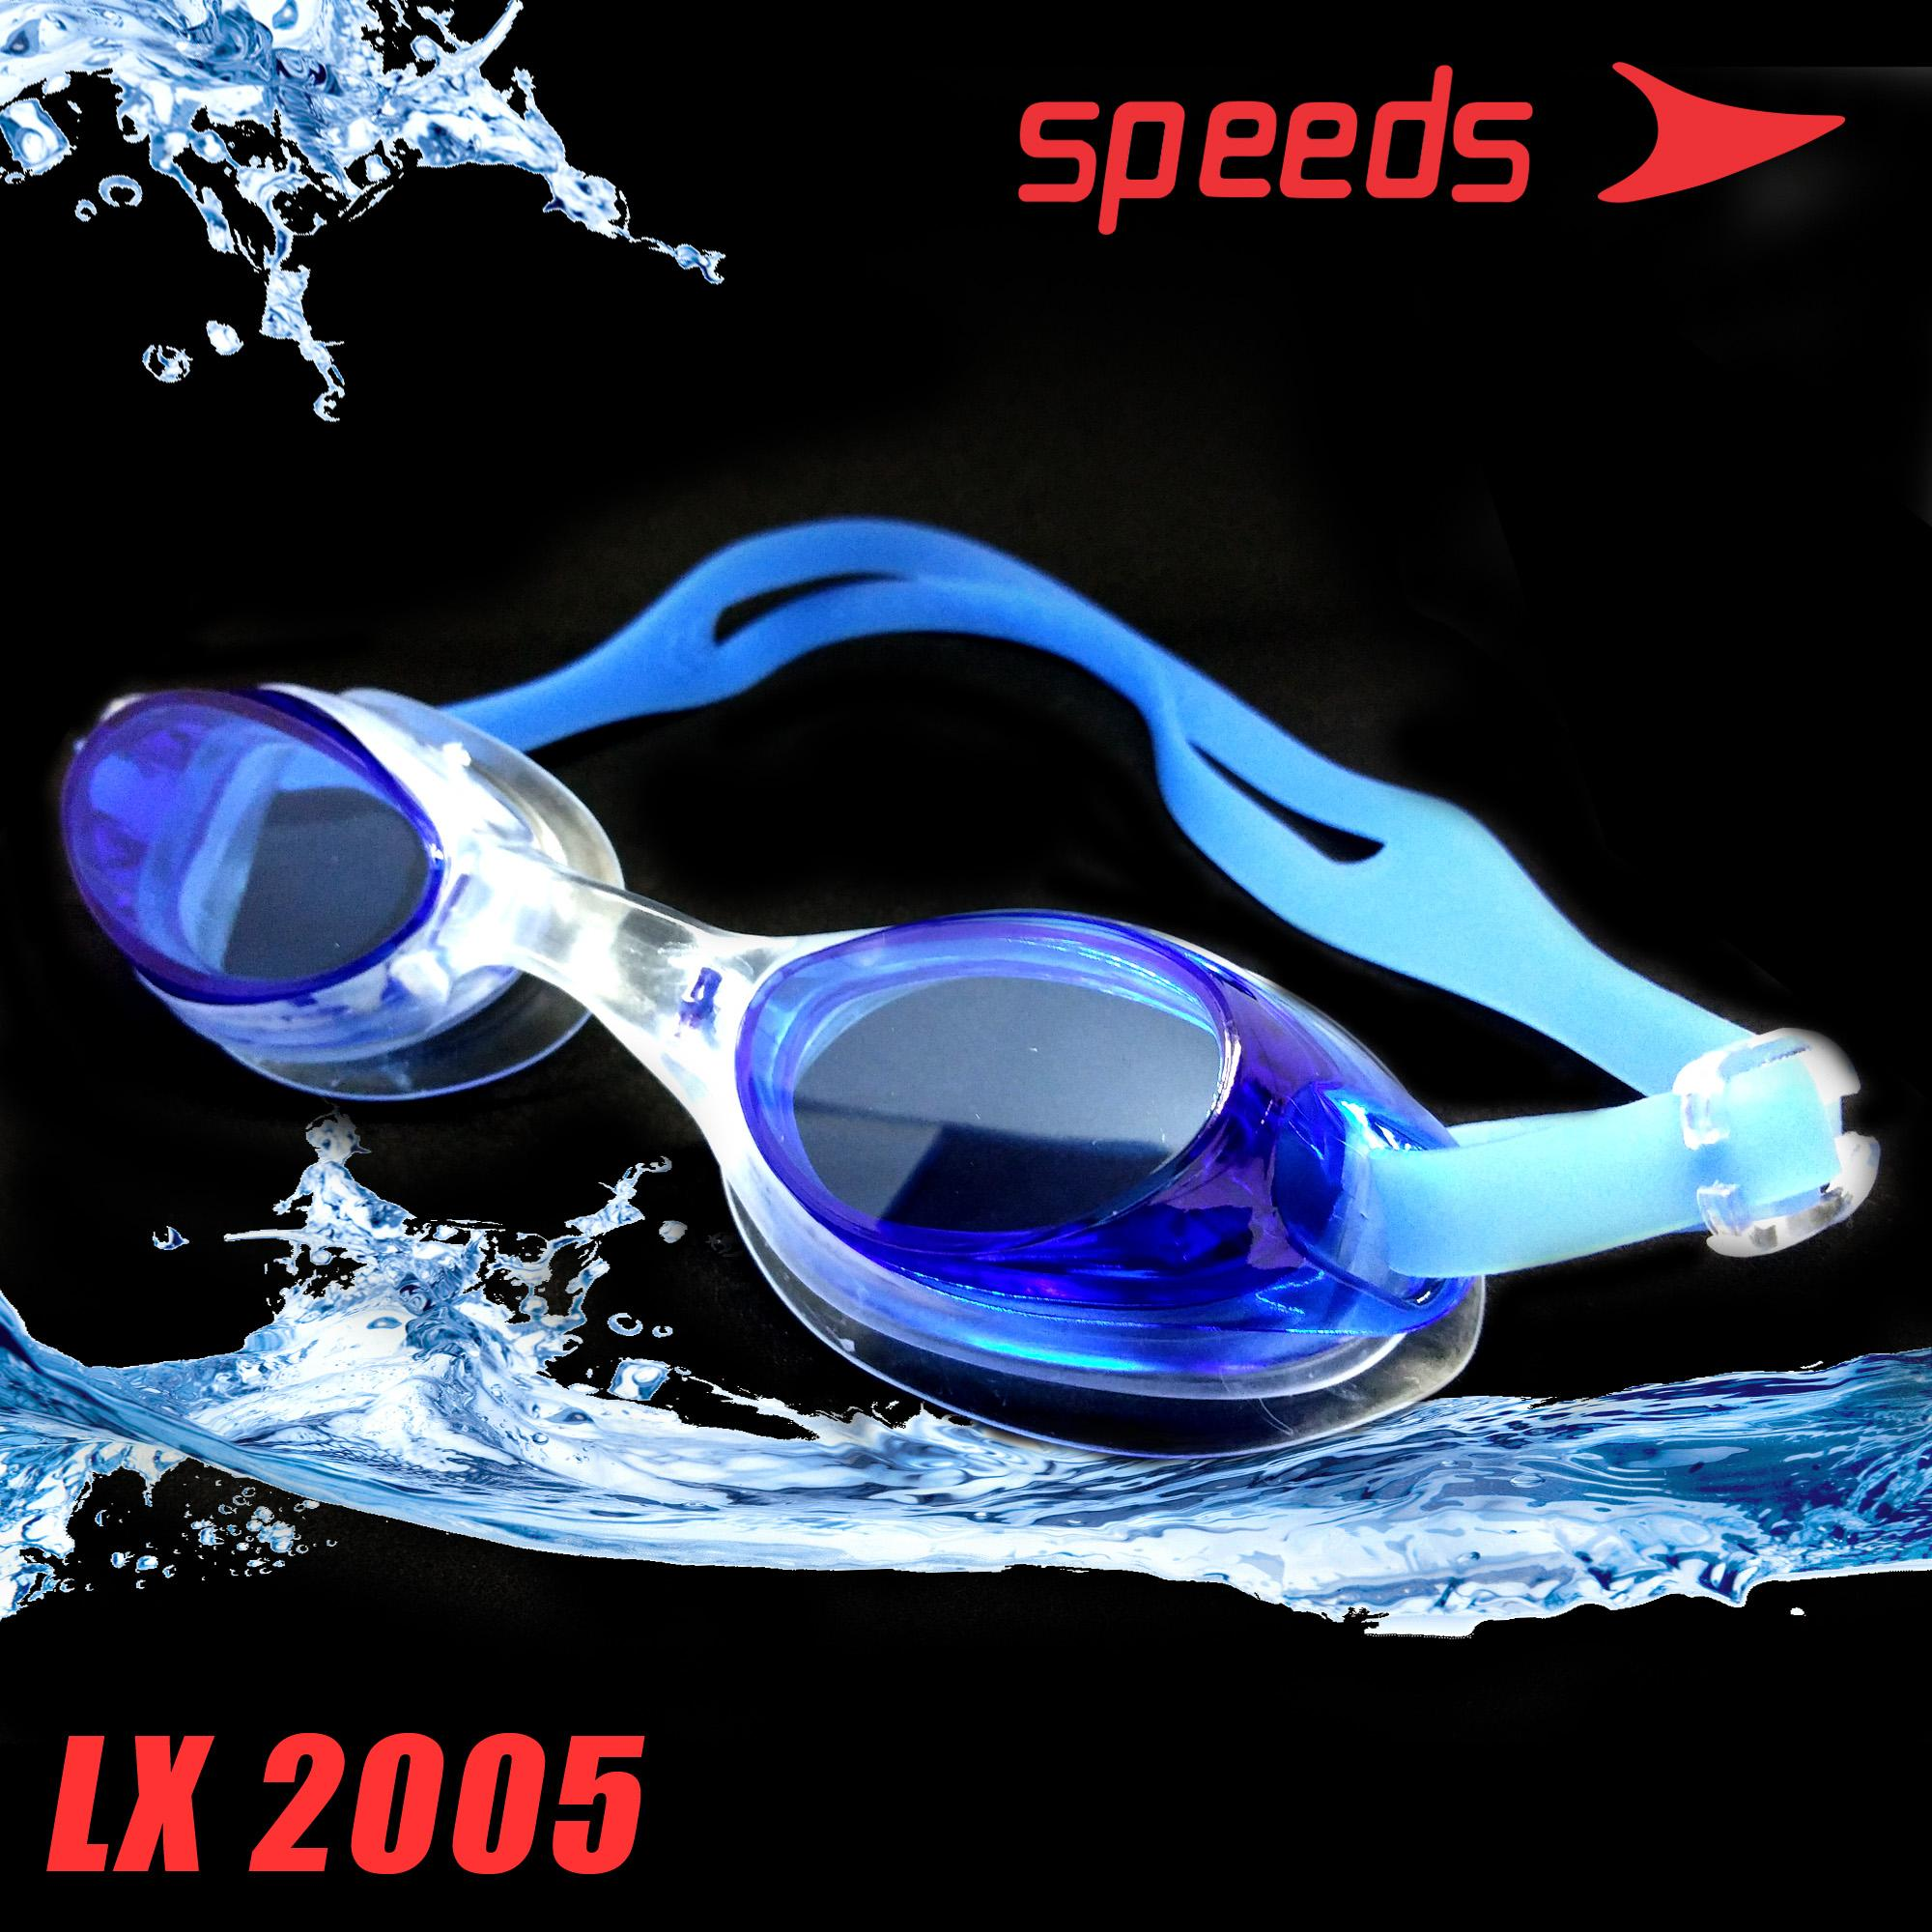 KACAMATA RENANG SWIMMING GOGGLES ORIGINAL SPEEDS LX 2005 ANTI-FOG AND UV  SHIELD IMPORT TERMURAH a458c4668d